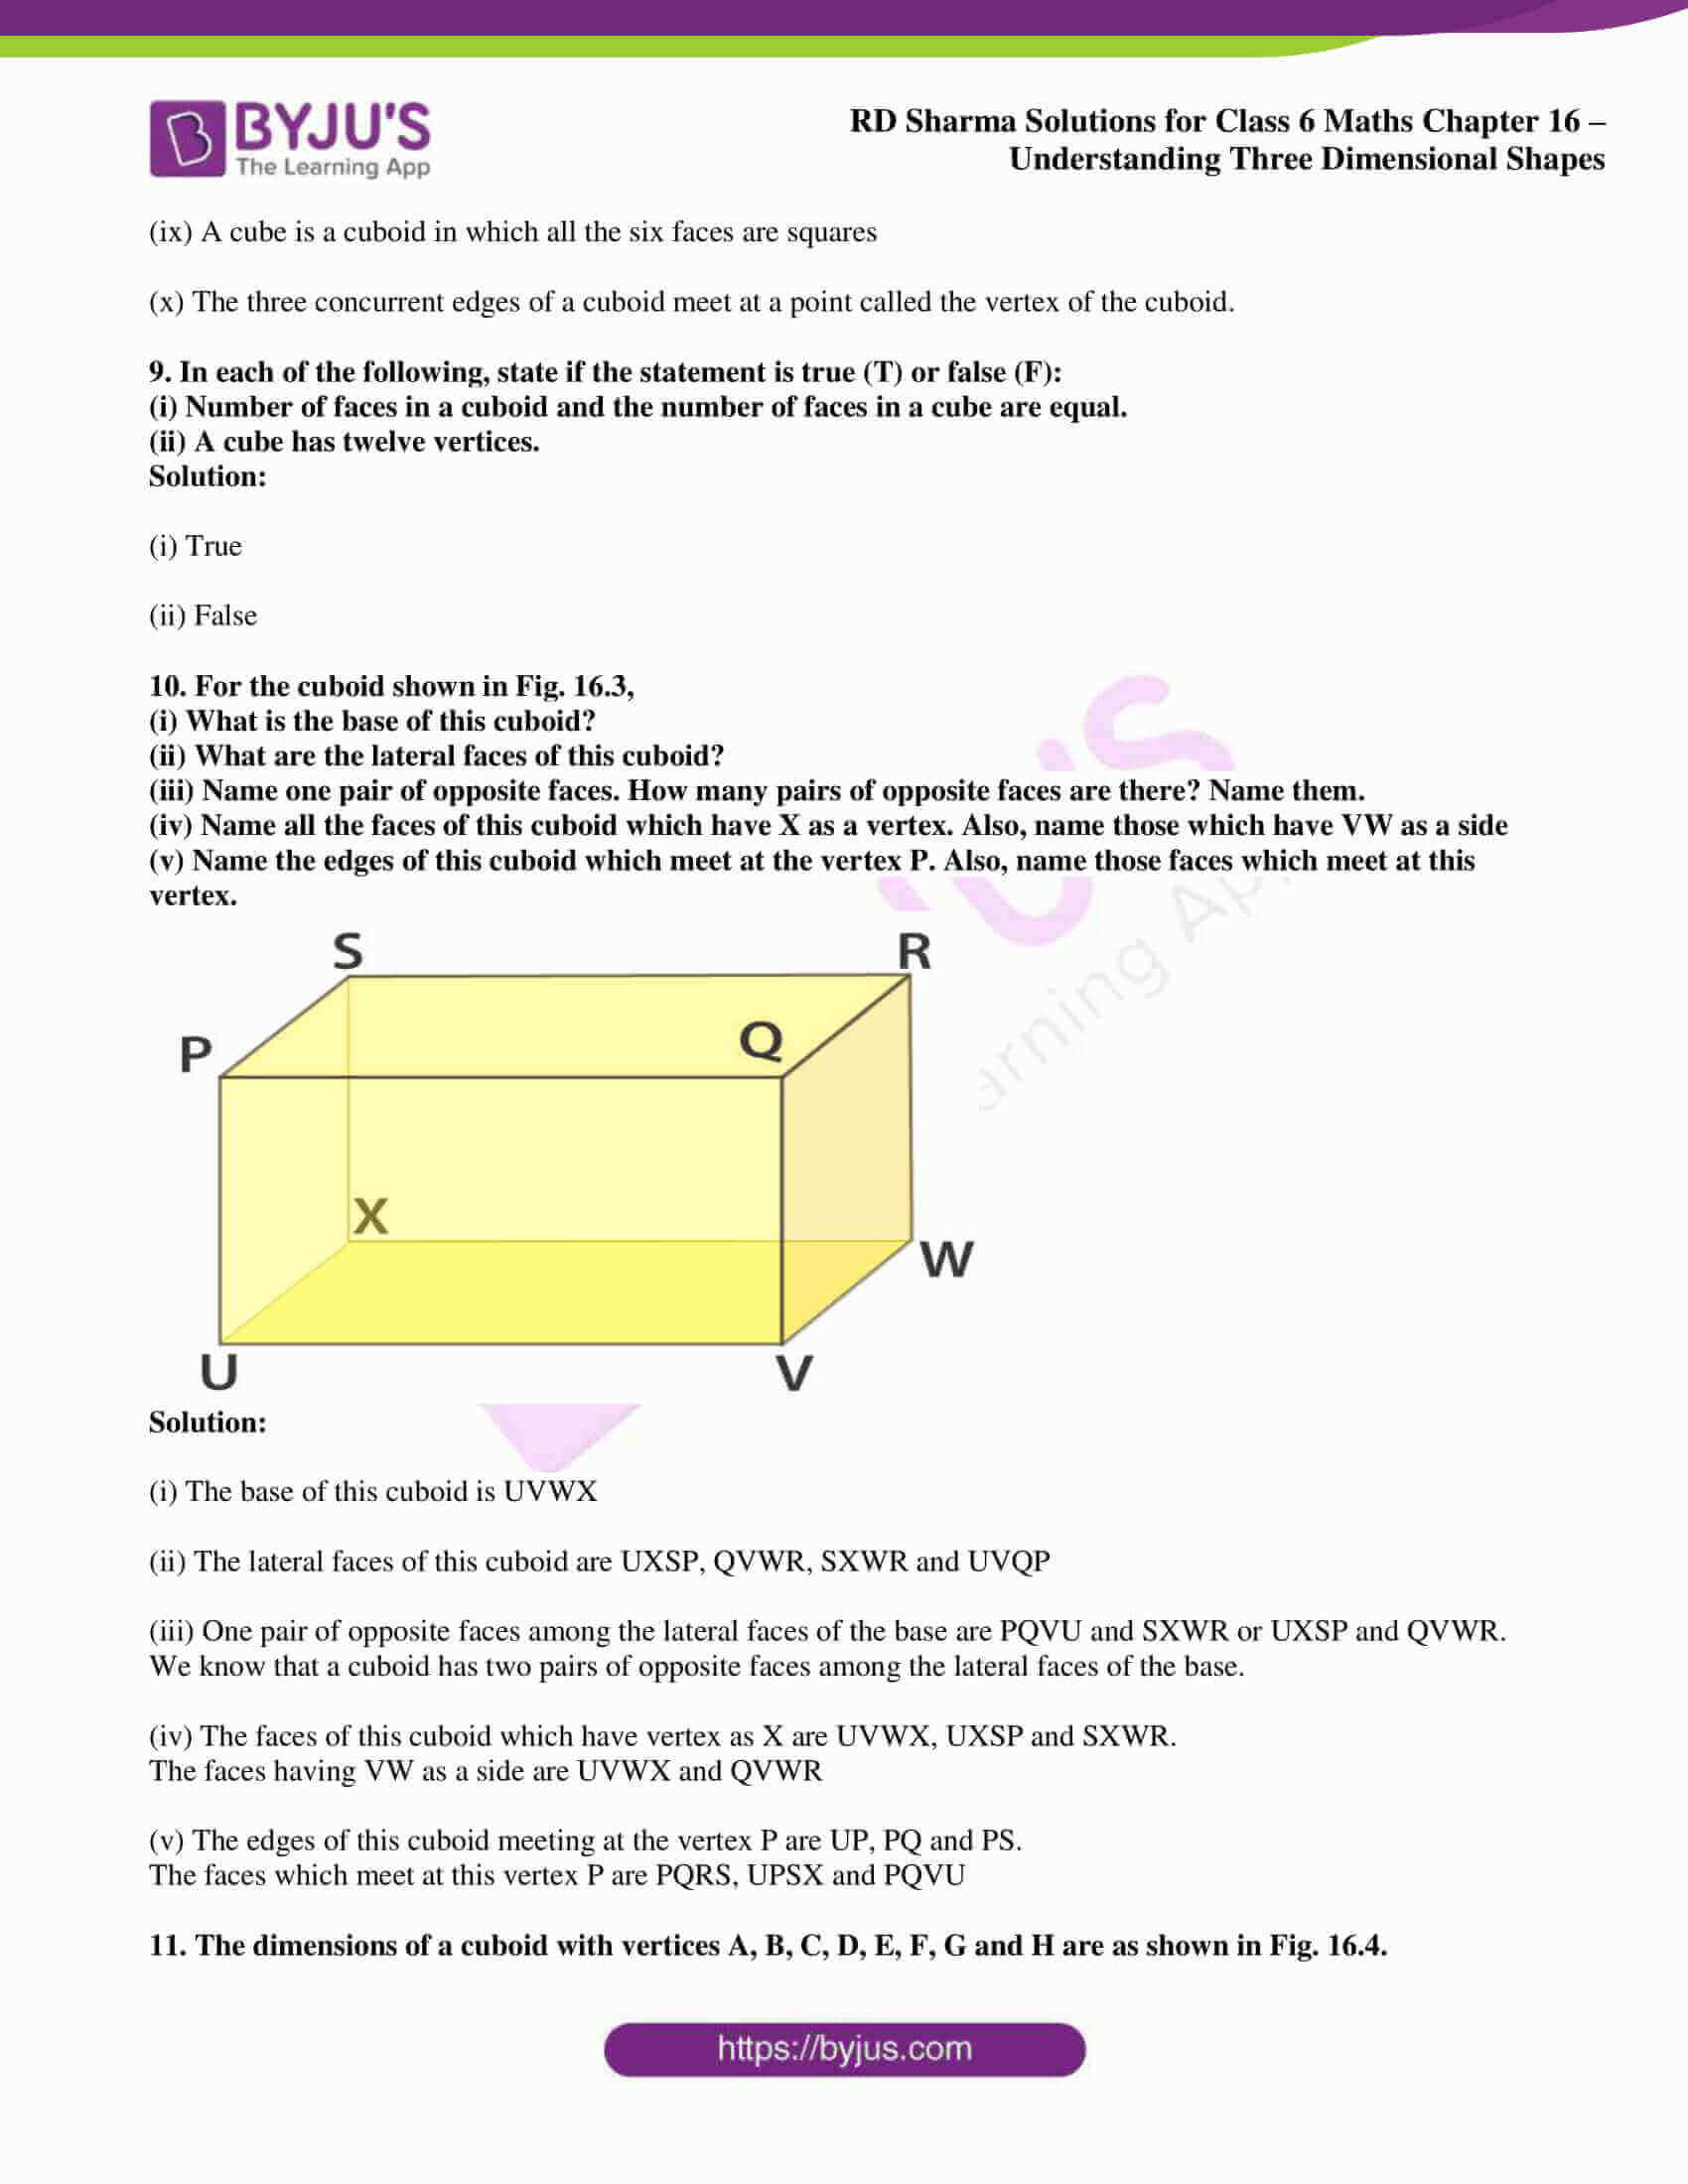 rd sharma solutions nov2020 class 6 maths chapter 16 exercise 1 5